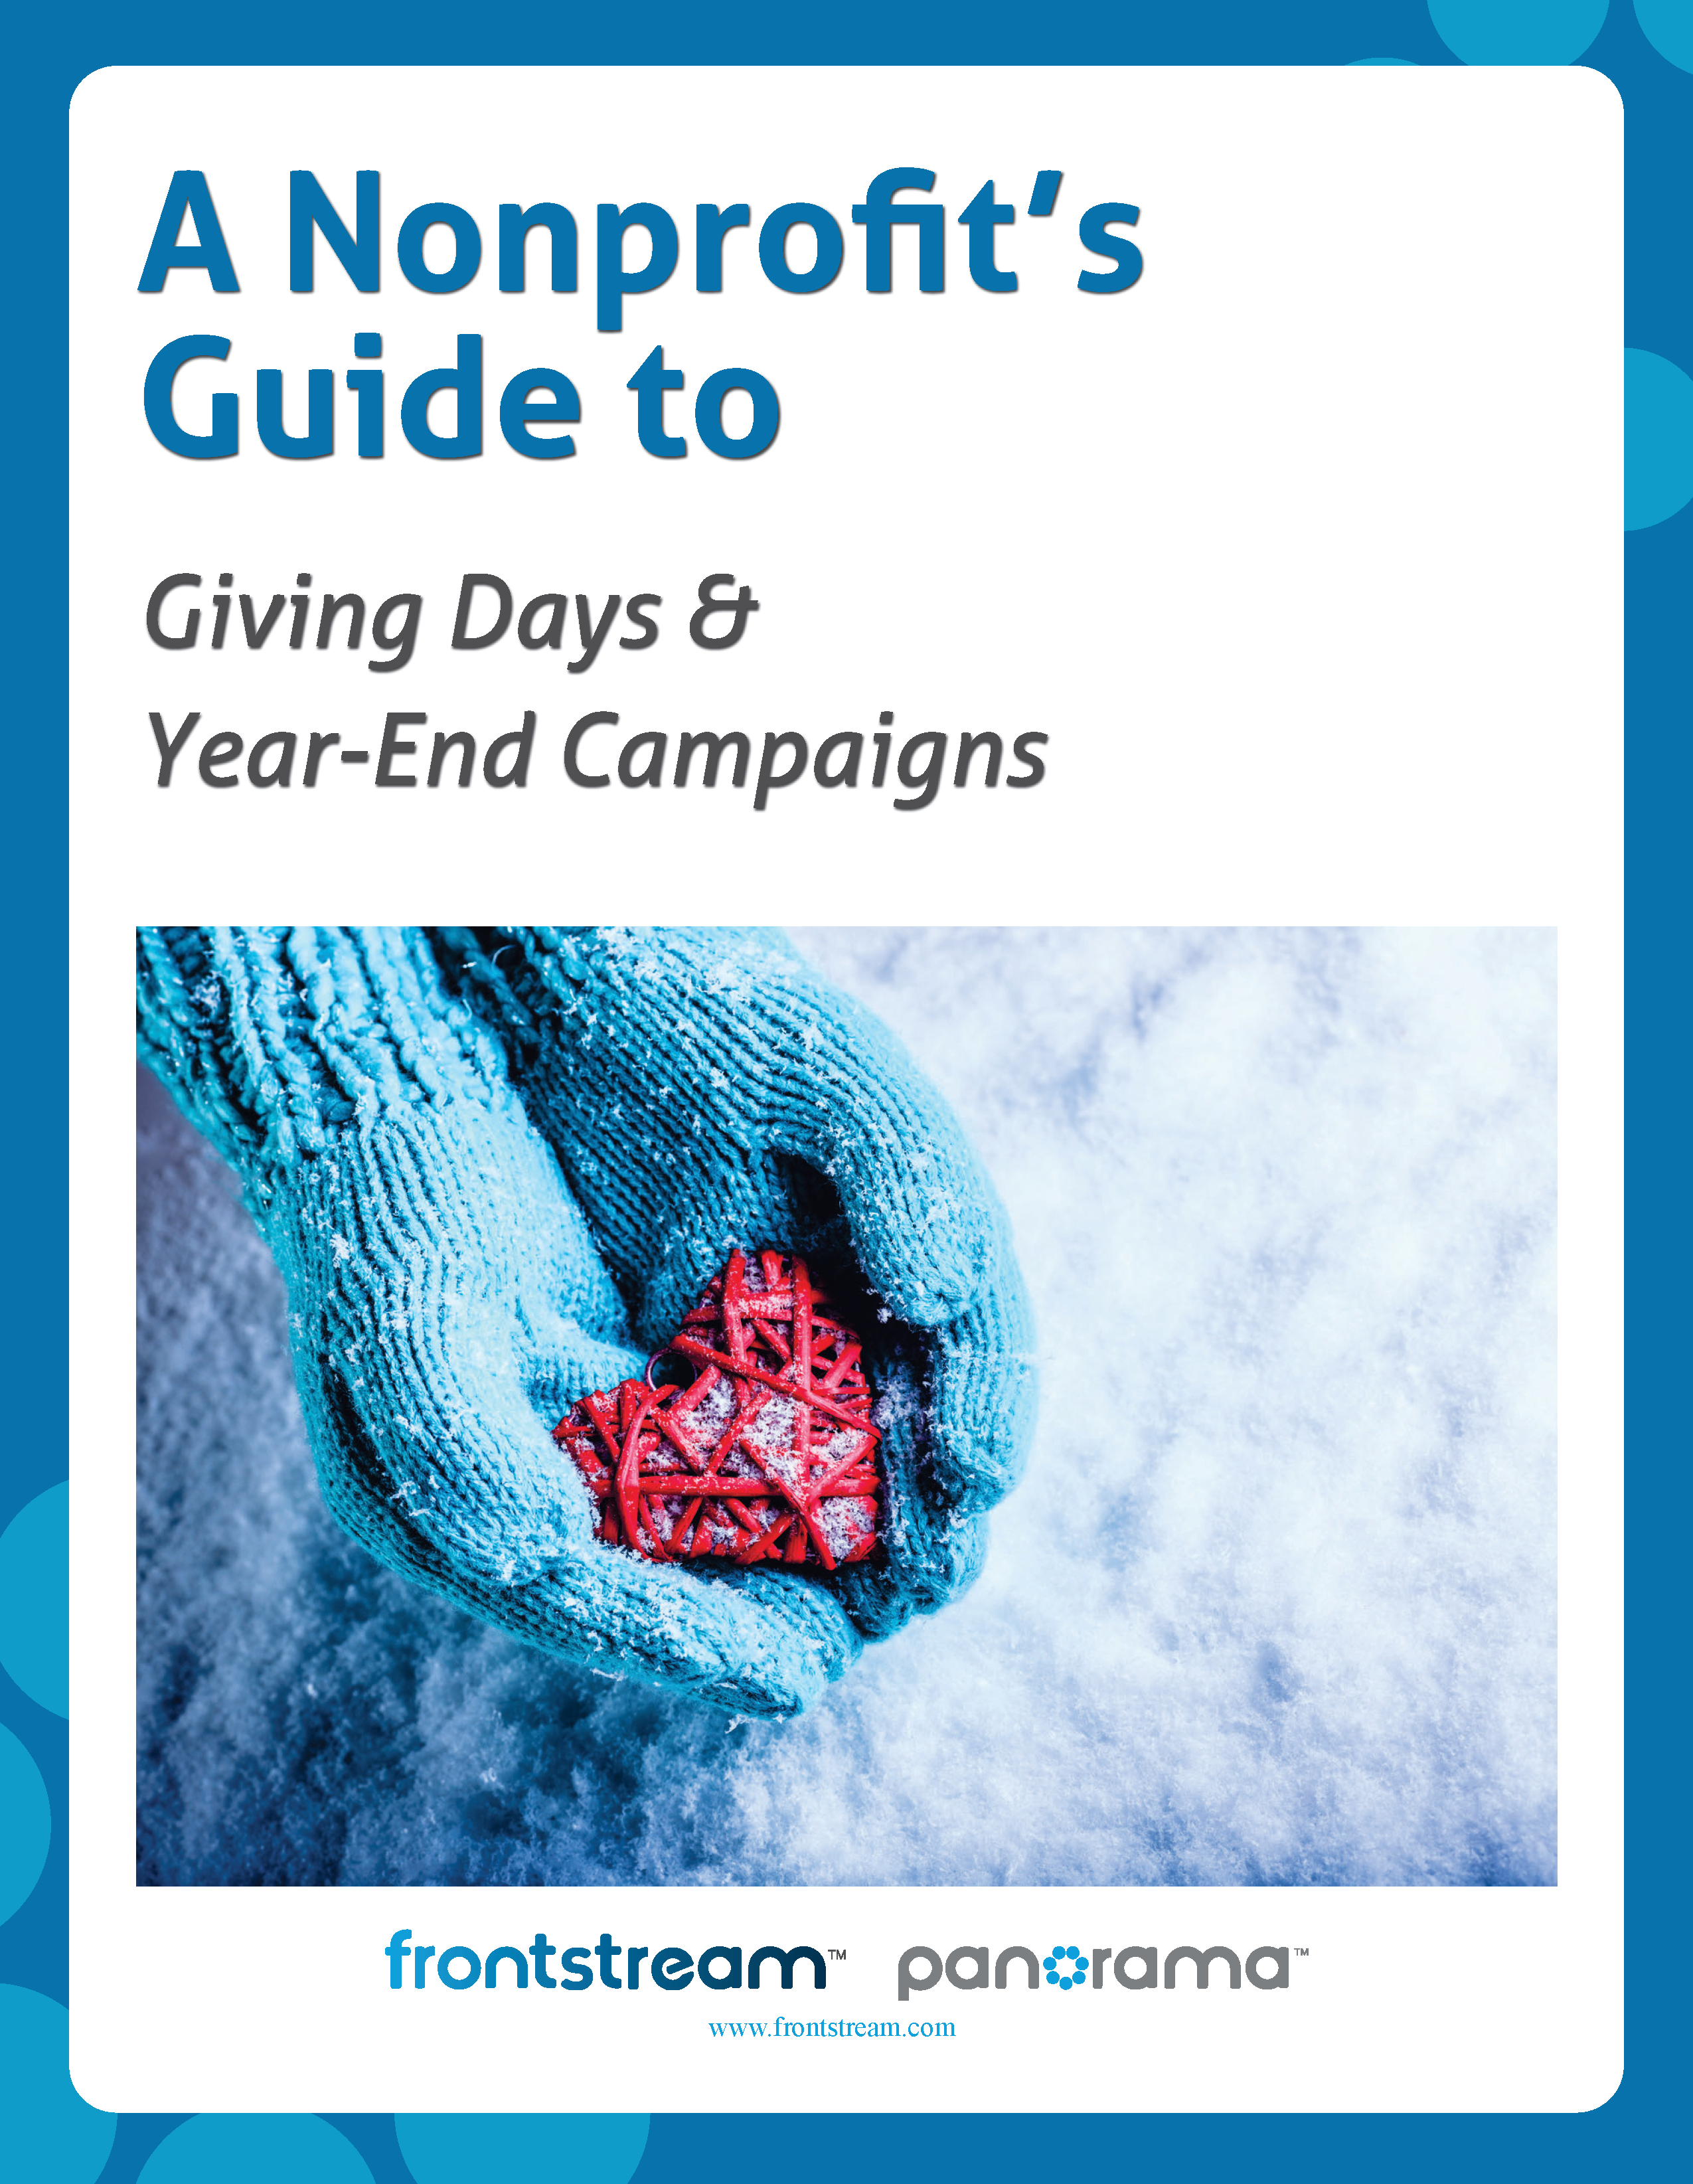 Nonprofits Guide to Giving Days